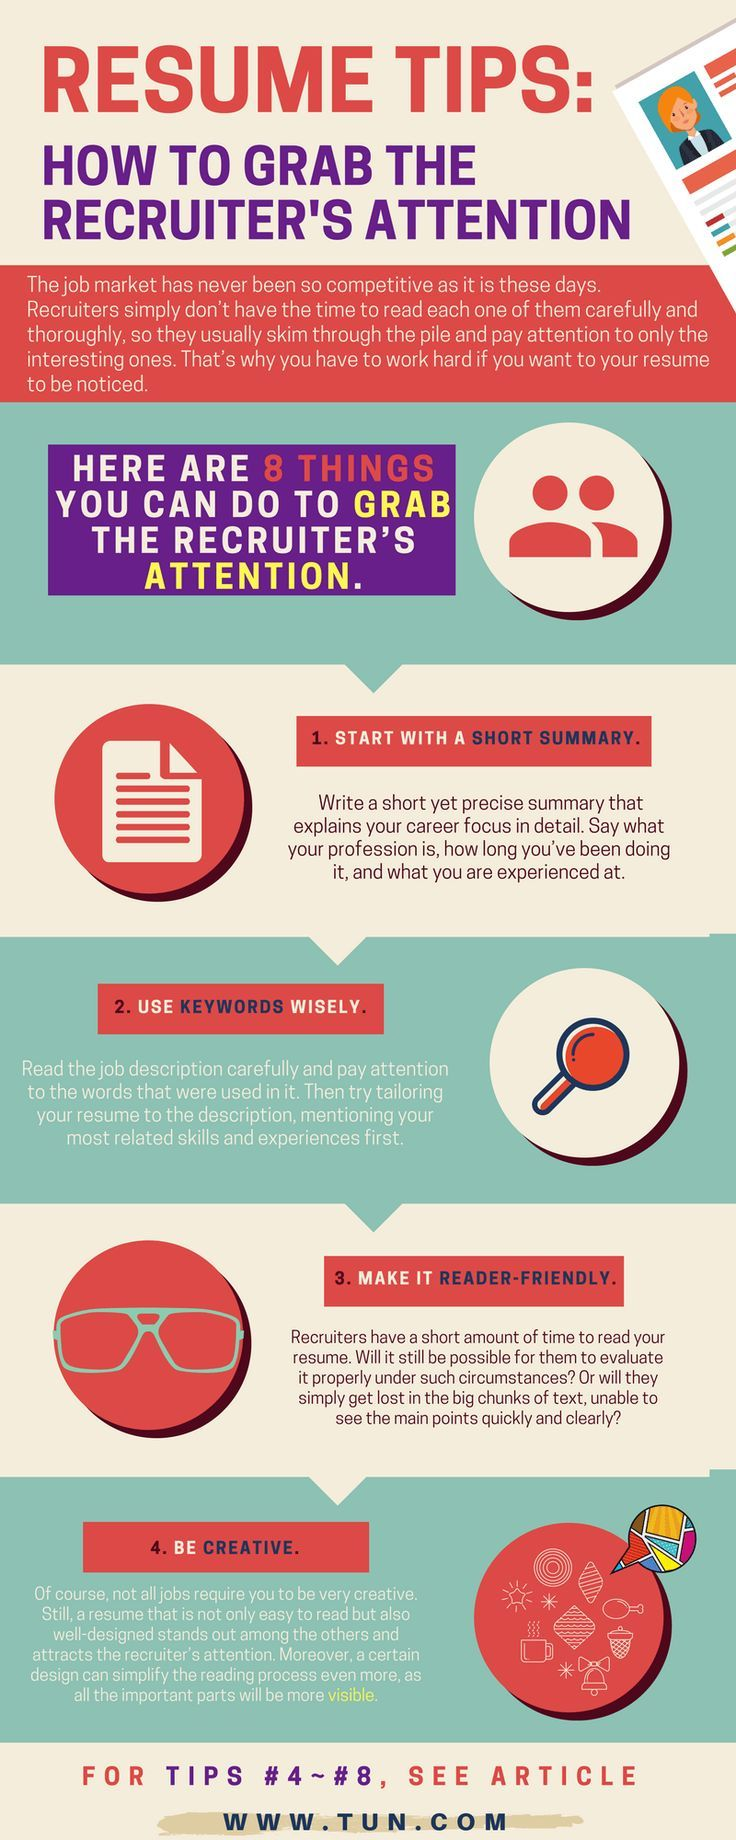 8 things you can do to grab the recruiter's attention - get your resume picked up and read!